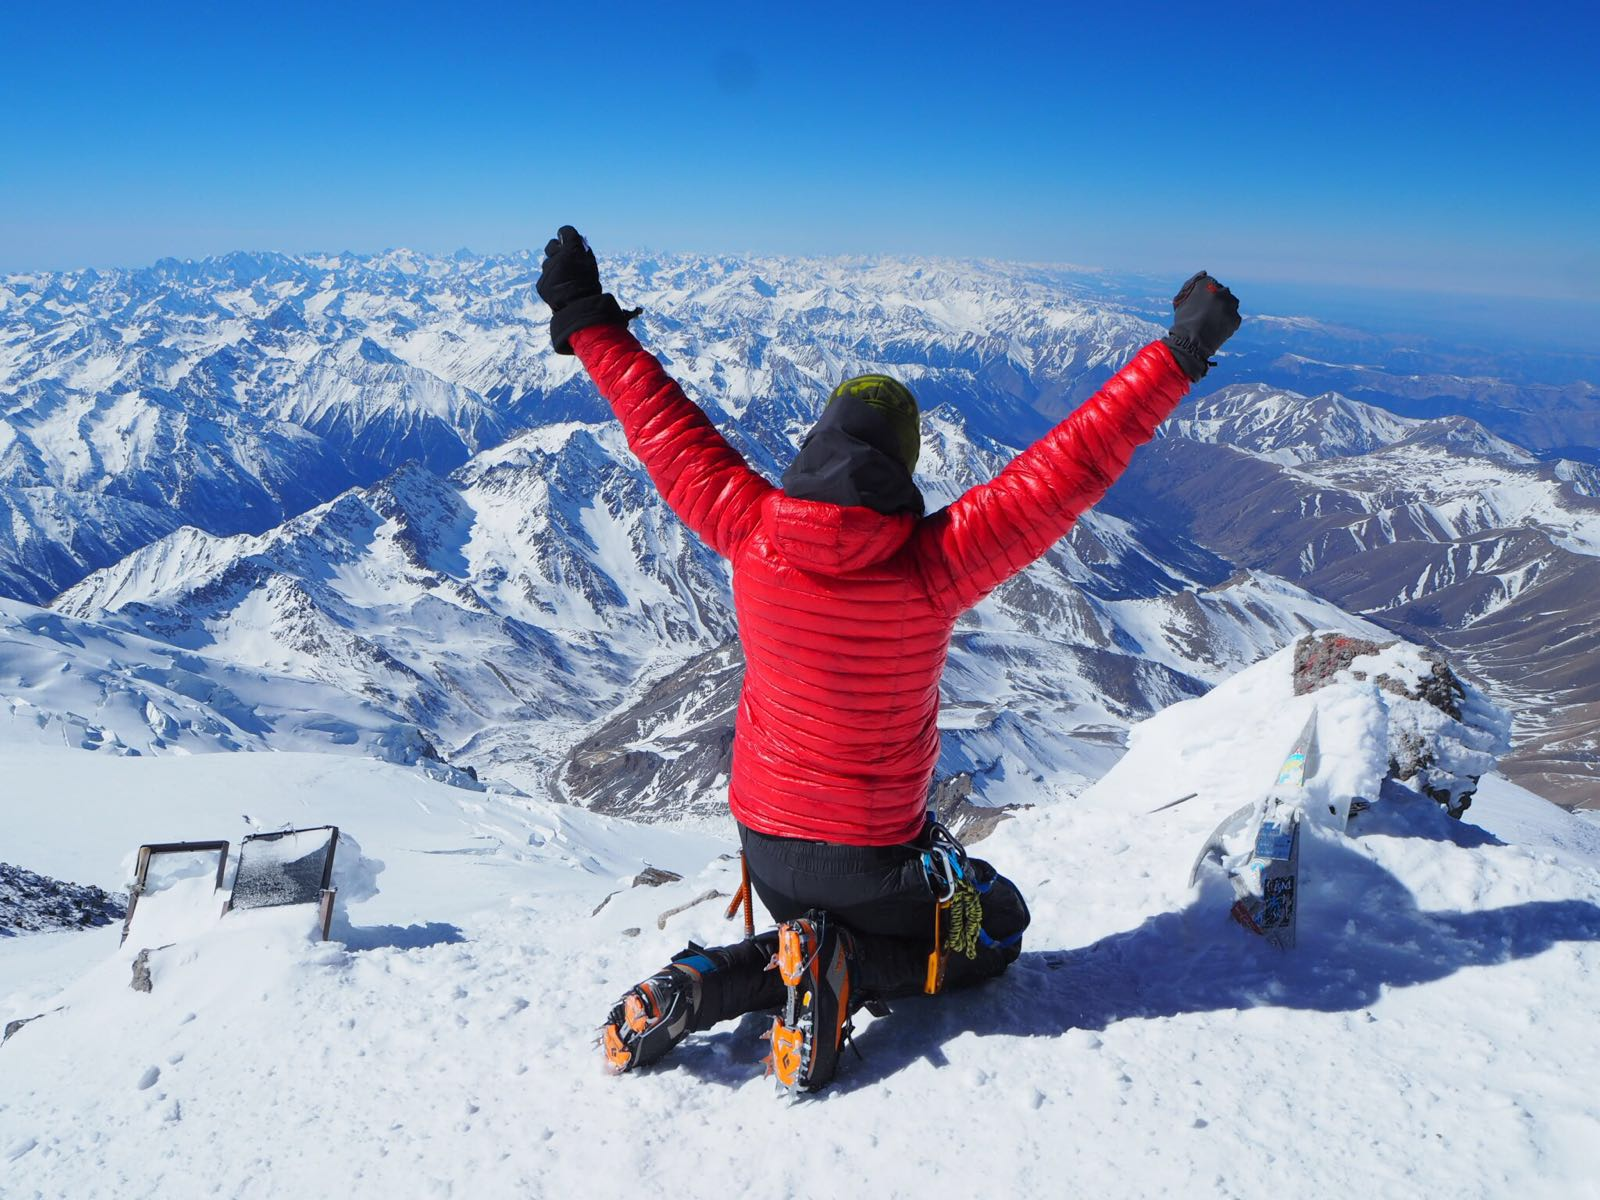 The Caucasus mountains in Russia, seen from the peak of Mount Elbrus, the tallest mountain in Europe.